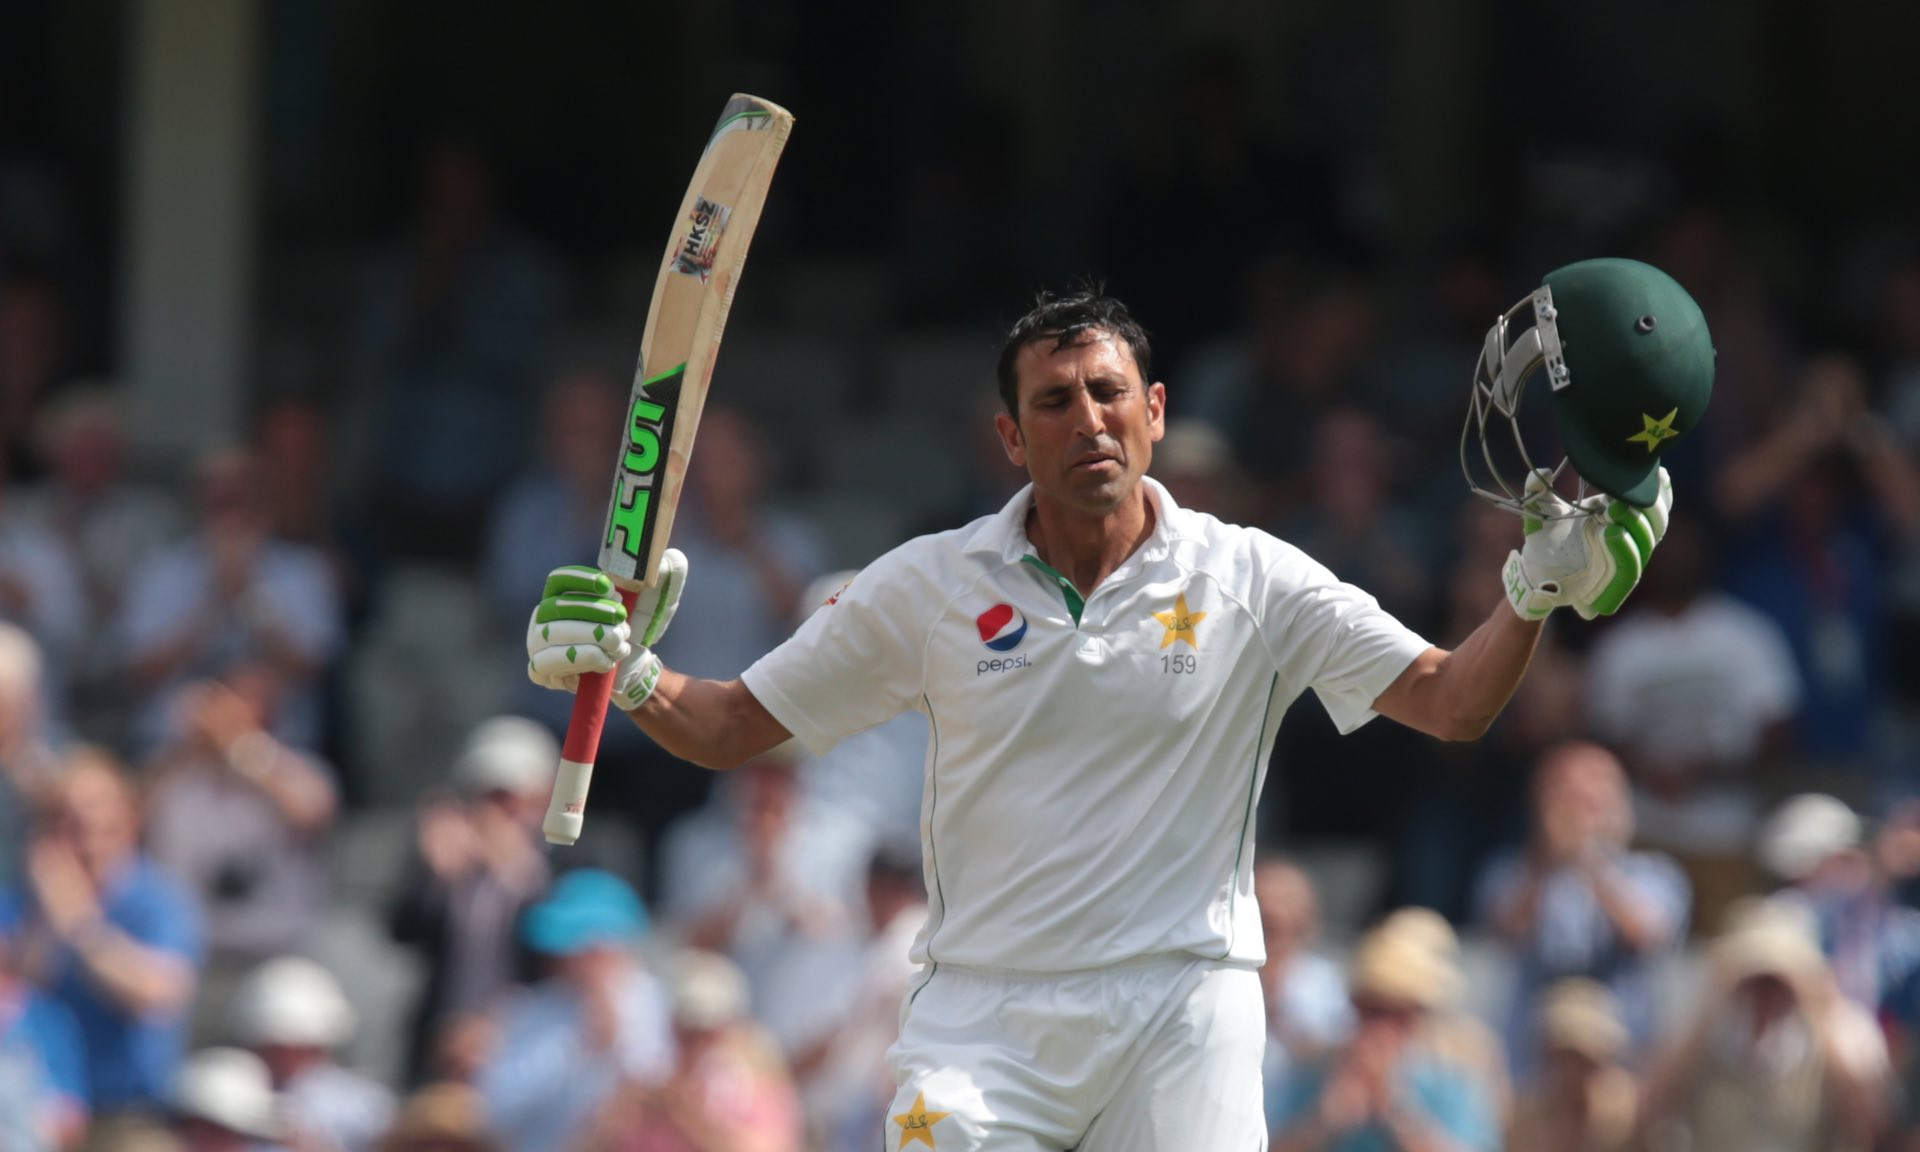 Younis Khan acknowledges The Oval crowd as he celebrates his double century on day three of the fourth Test against England in August 2016.